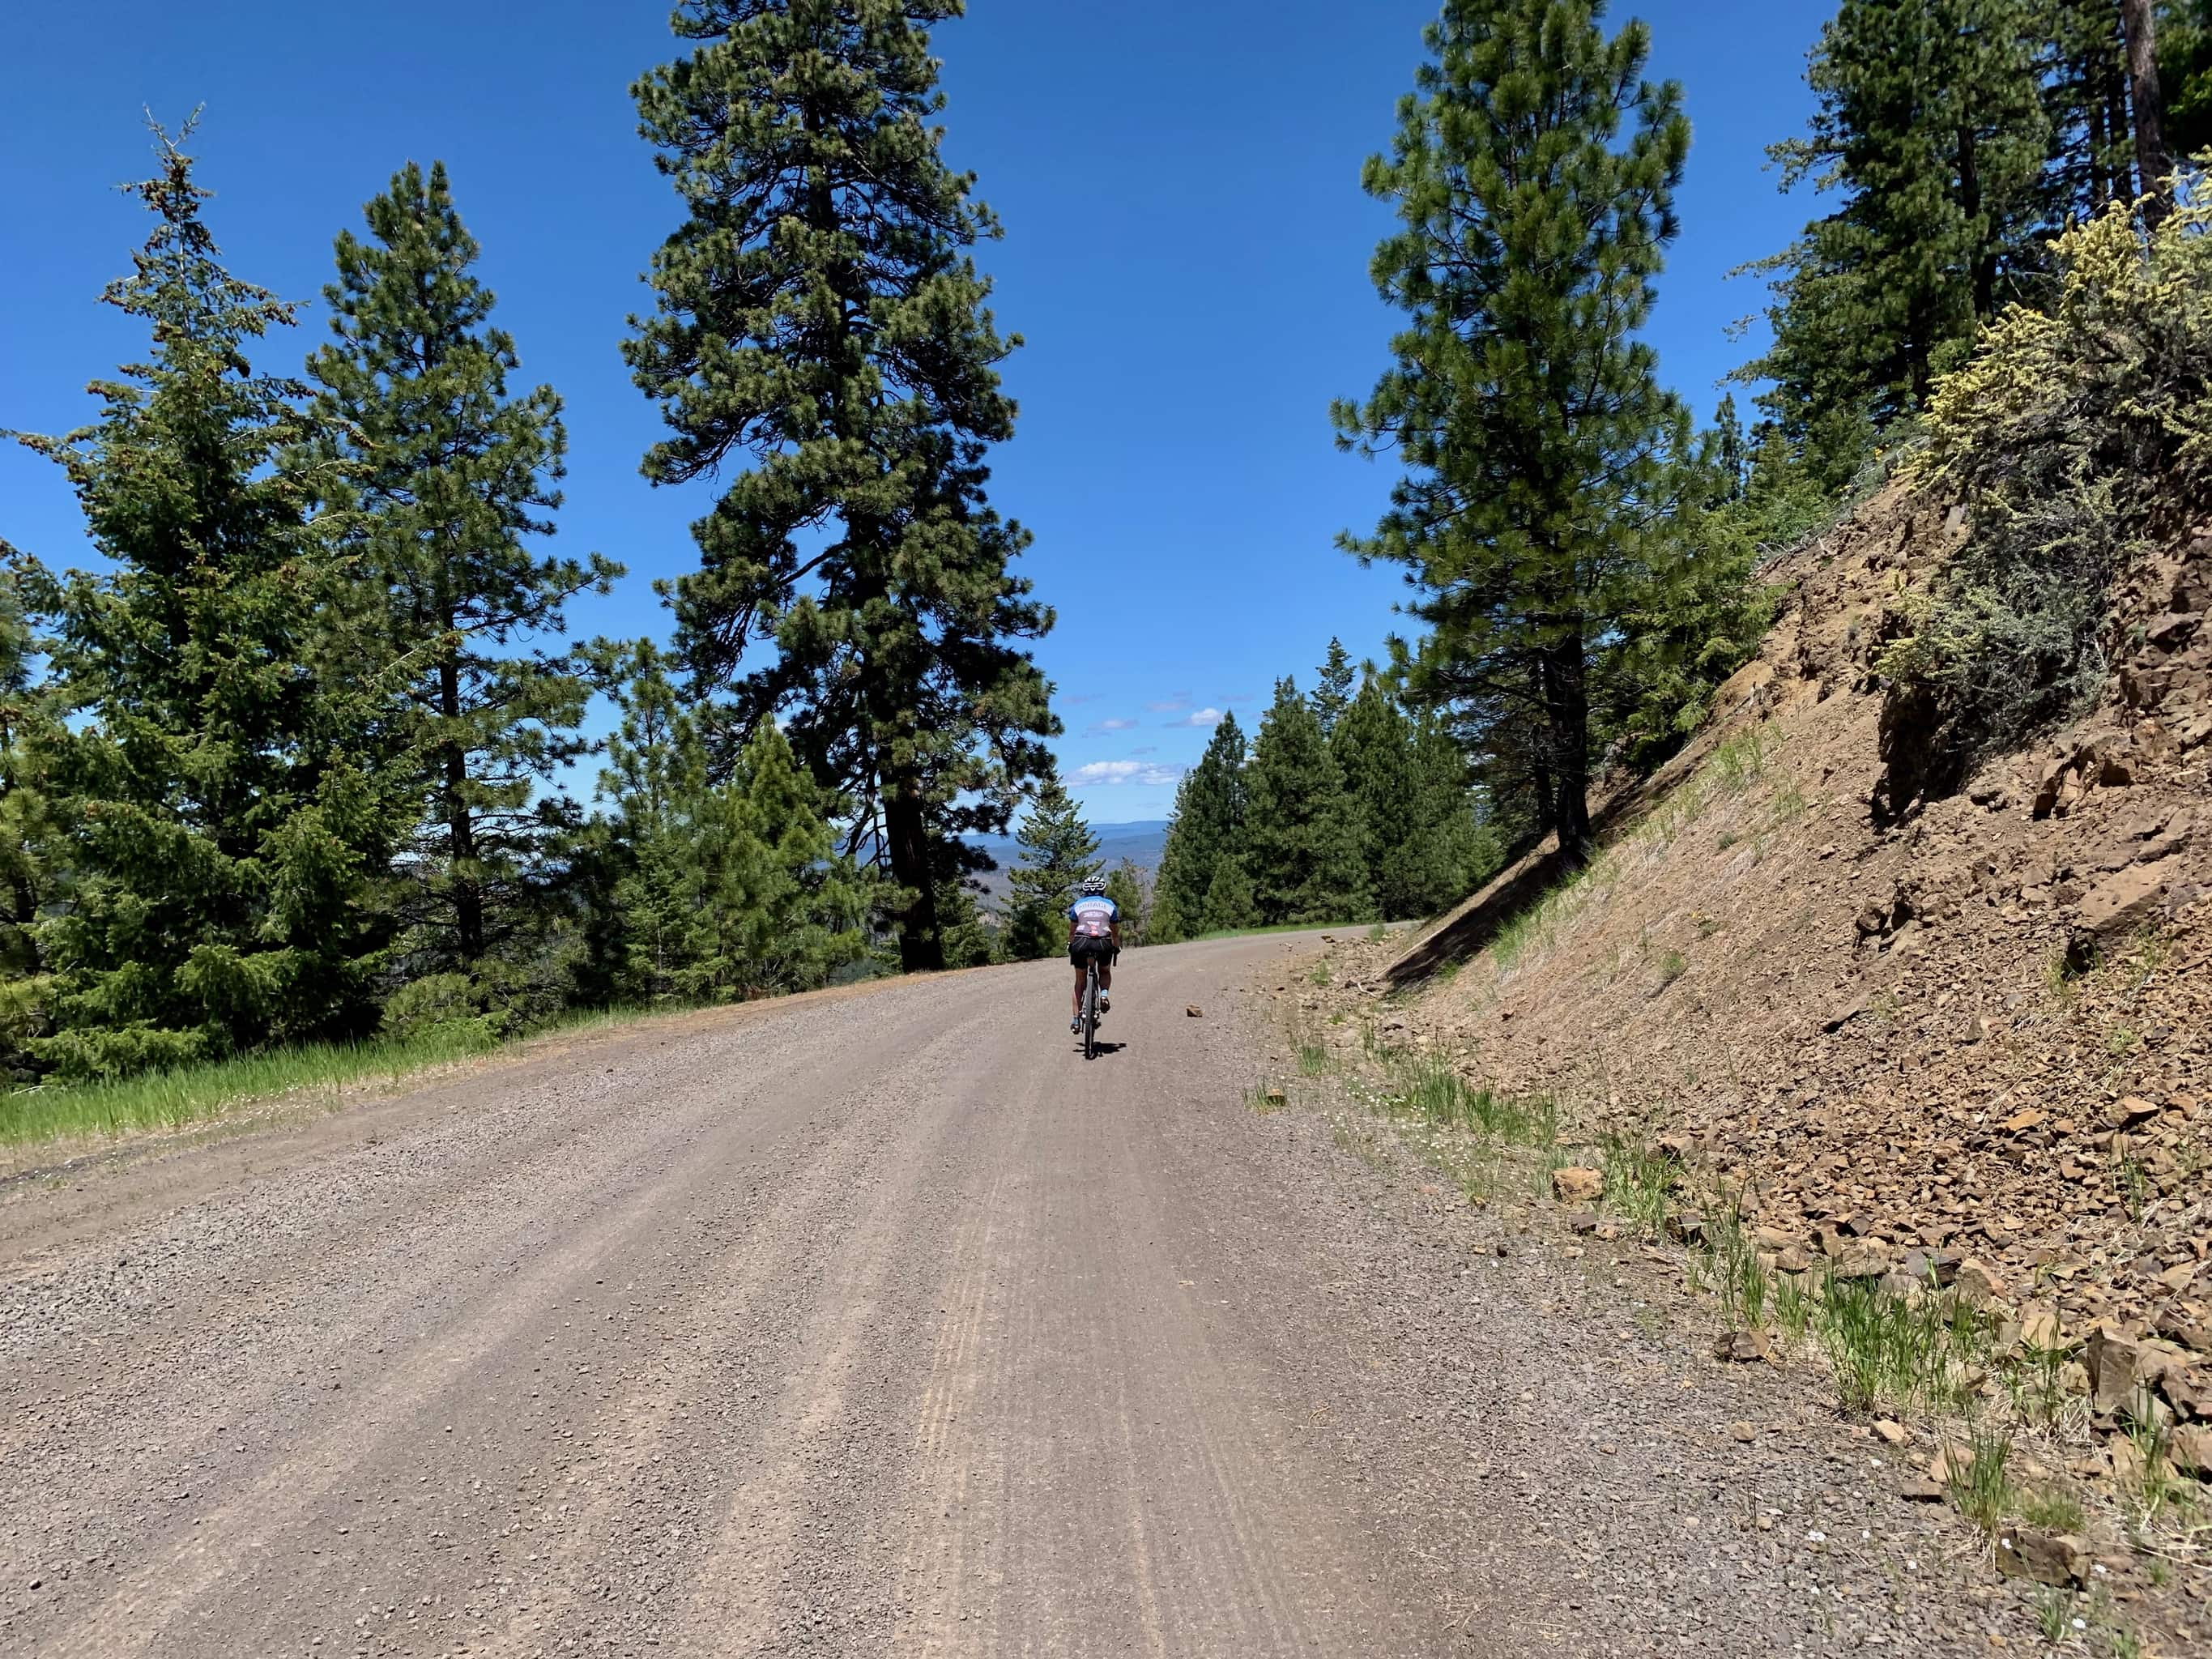 Gravel cyclist descending gravel road / forest service road NF-16  to Post, Oregon.